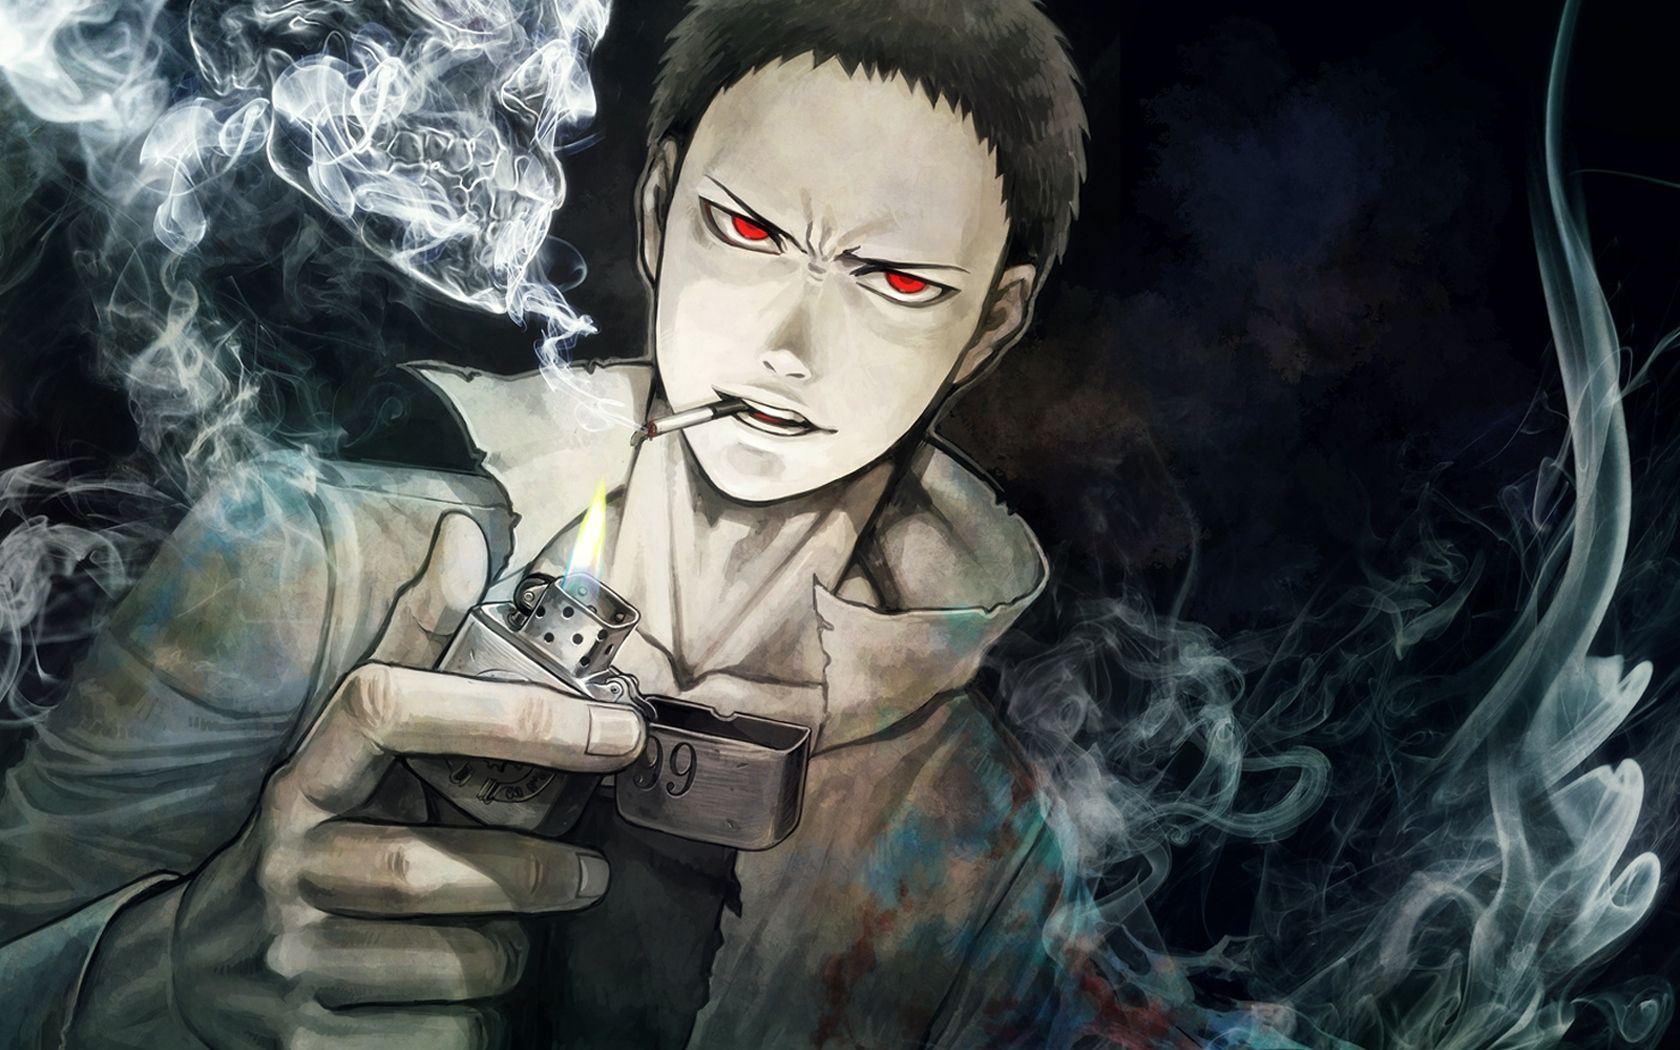 Cool Zombieman One Punch Man Anime Hd Wallpaper Id 7249 Download Page